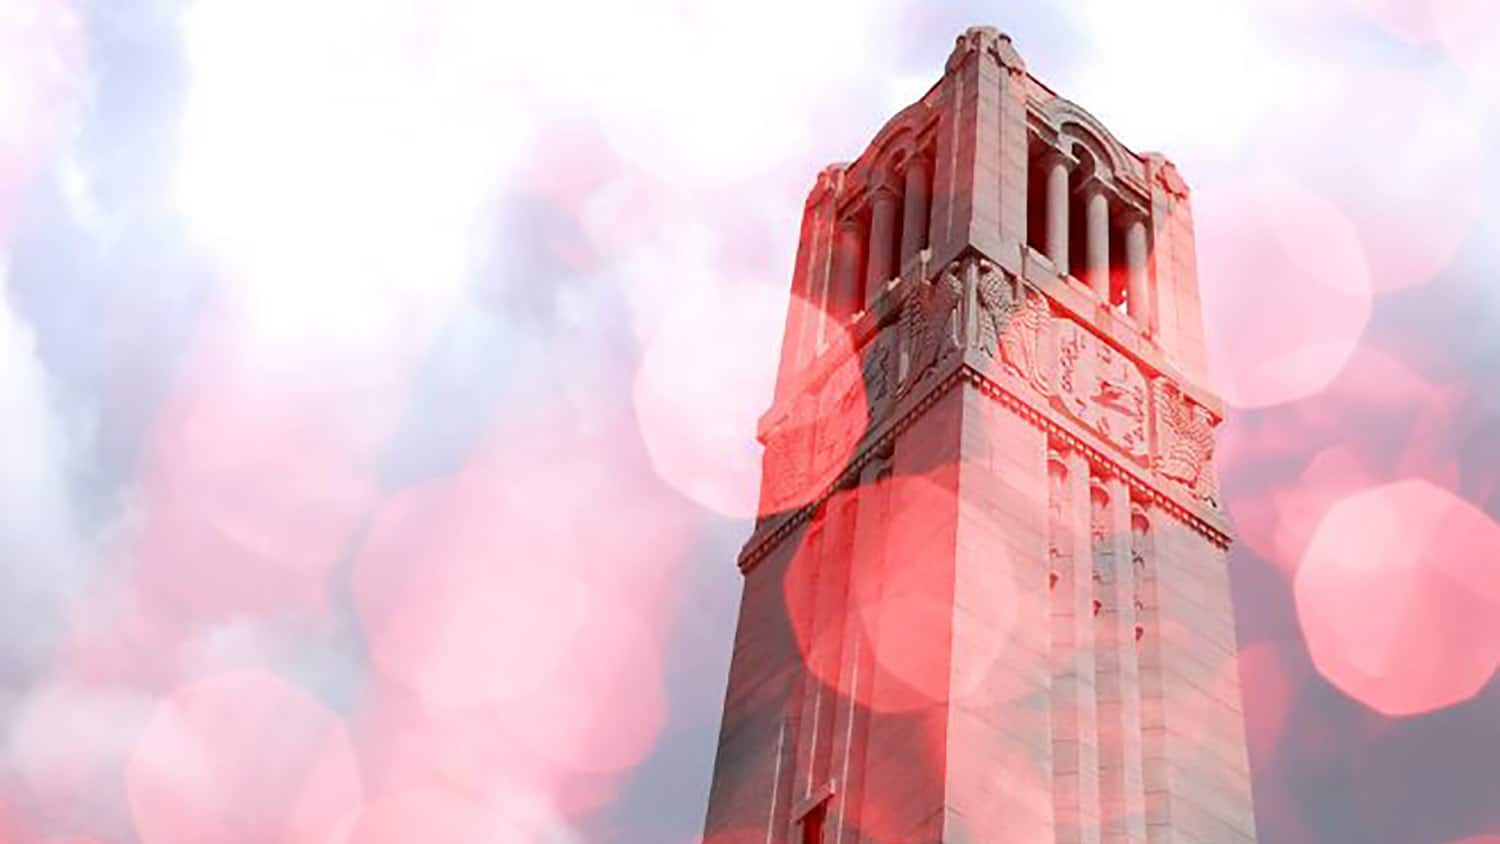 The NC State Belltower